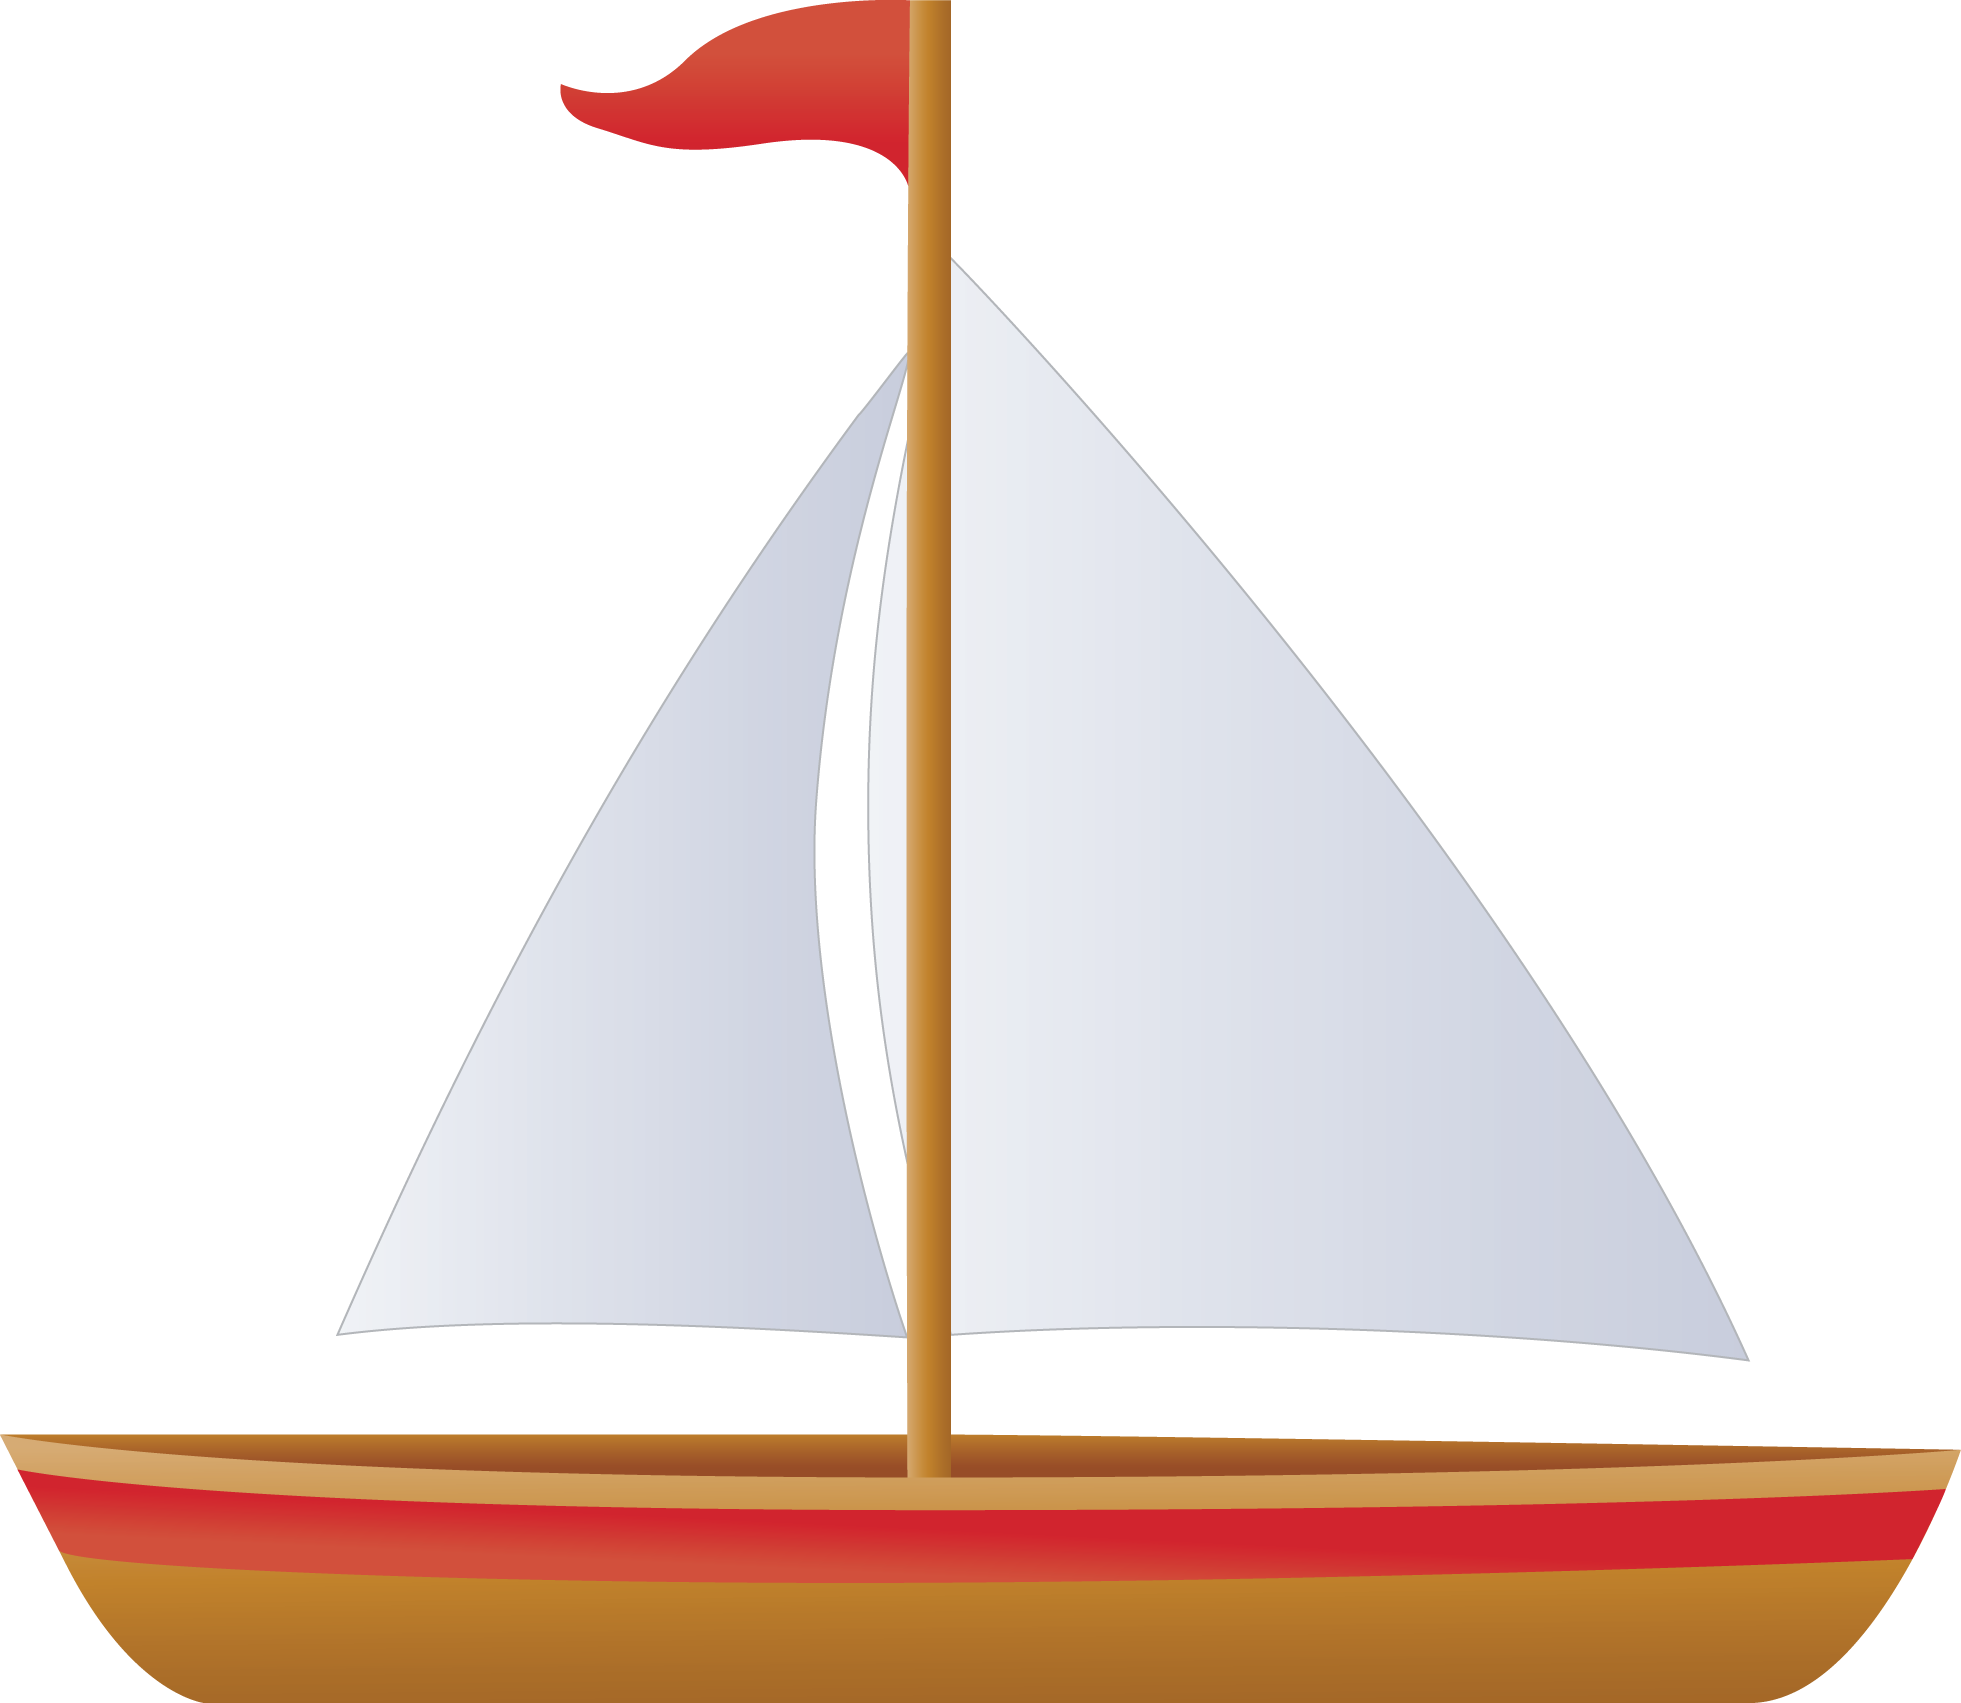 Sailboat png. Sailing transparent images pluspng